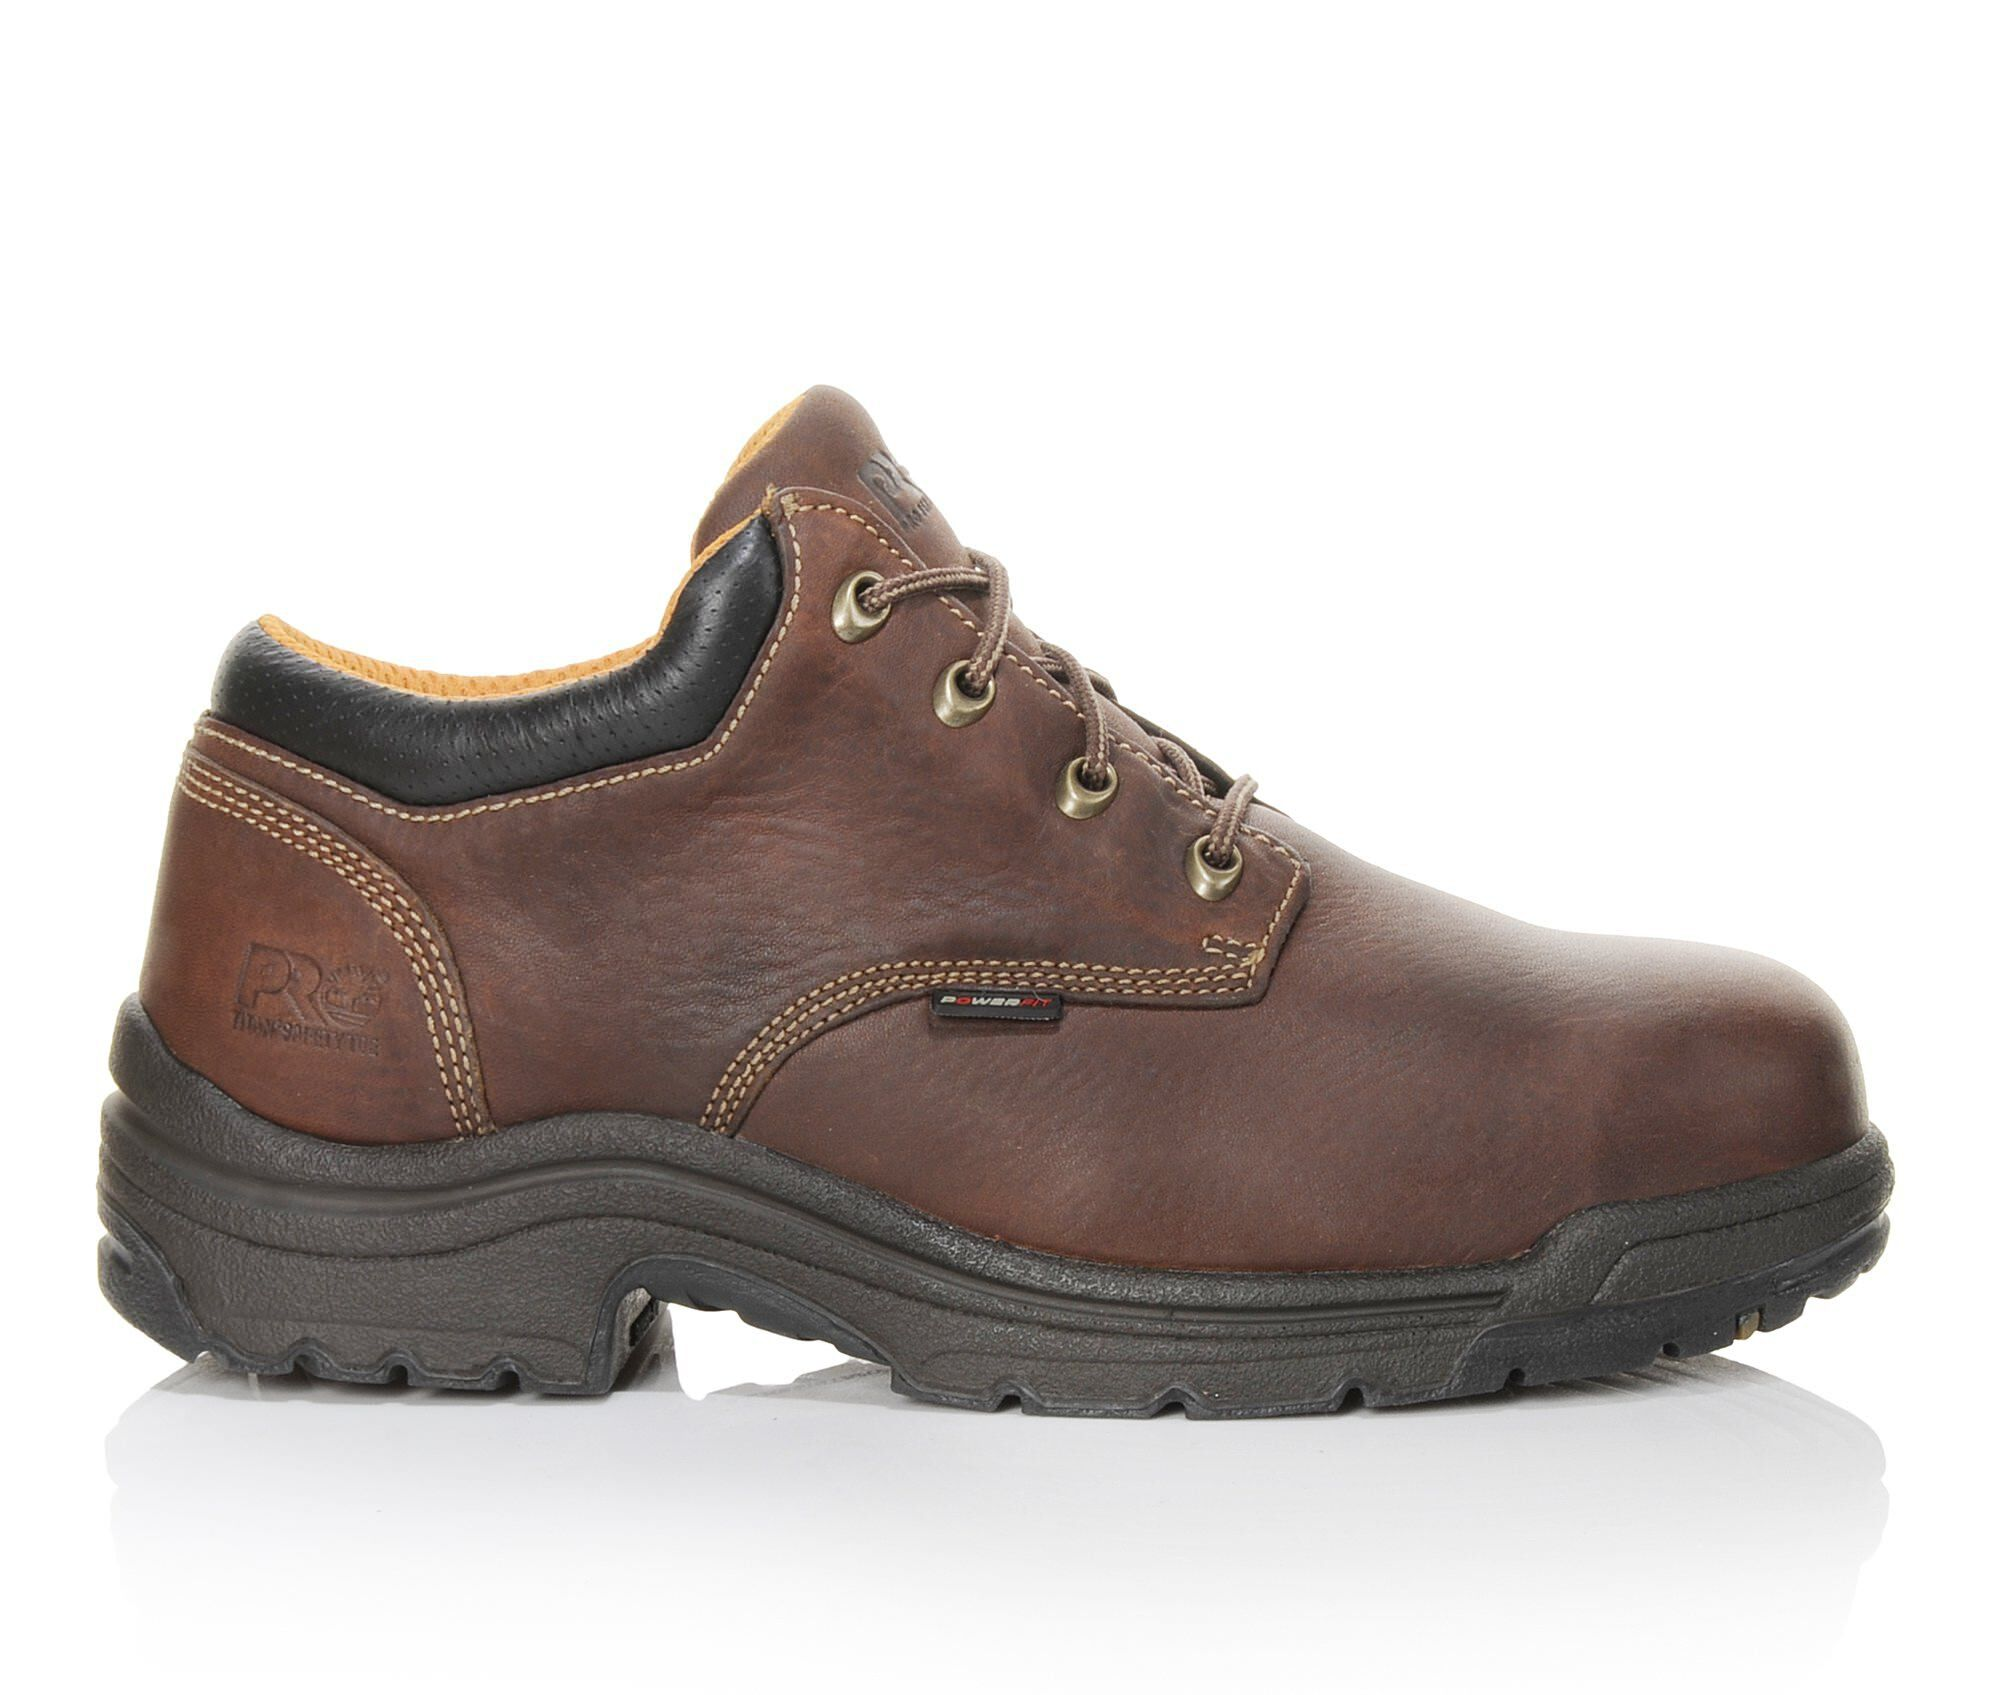 Men's Timberland Pro Titan Oxford 47028 Alloy Toe Work Shoes Trail Brown